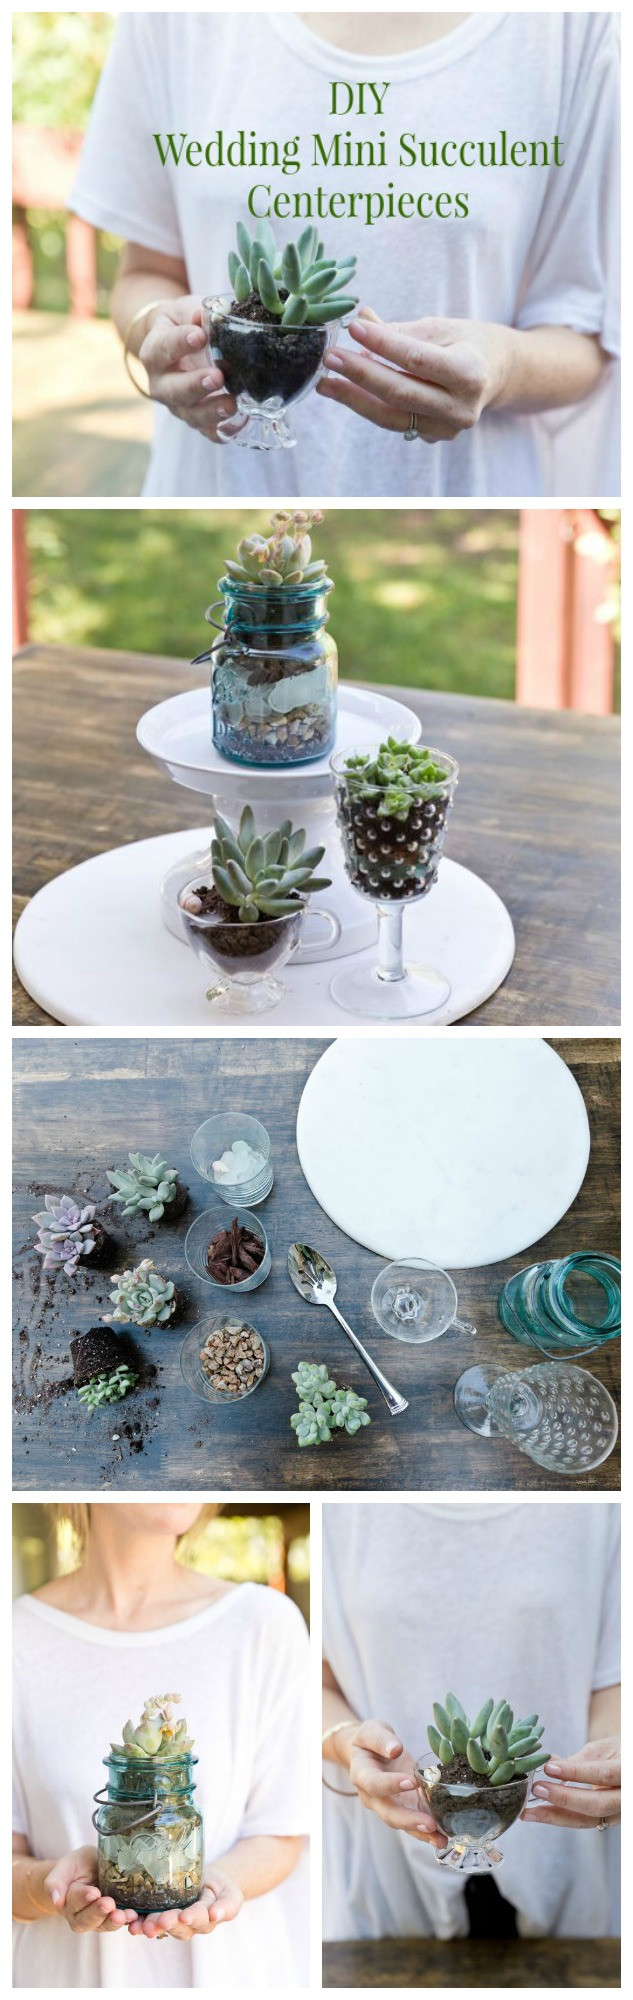 Best ideas about DIY Centerpiece Wedding . Save or Pin DIY Wedding Succulent Centerpieces Rustic Wedding Chic Now.